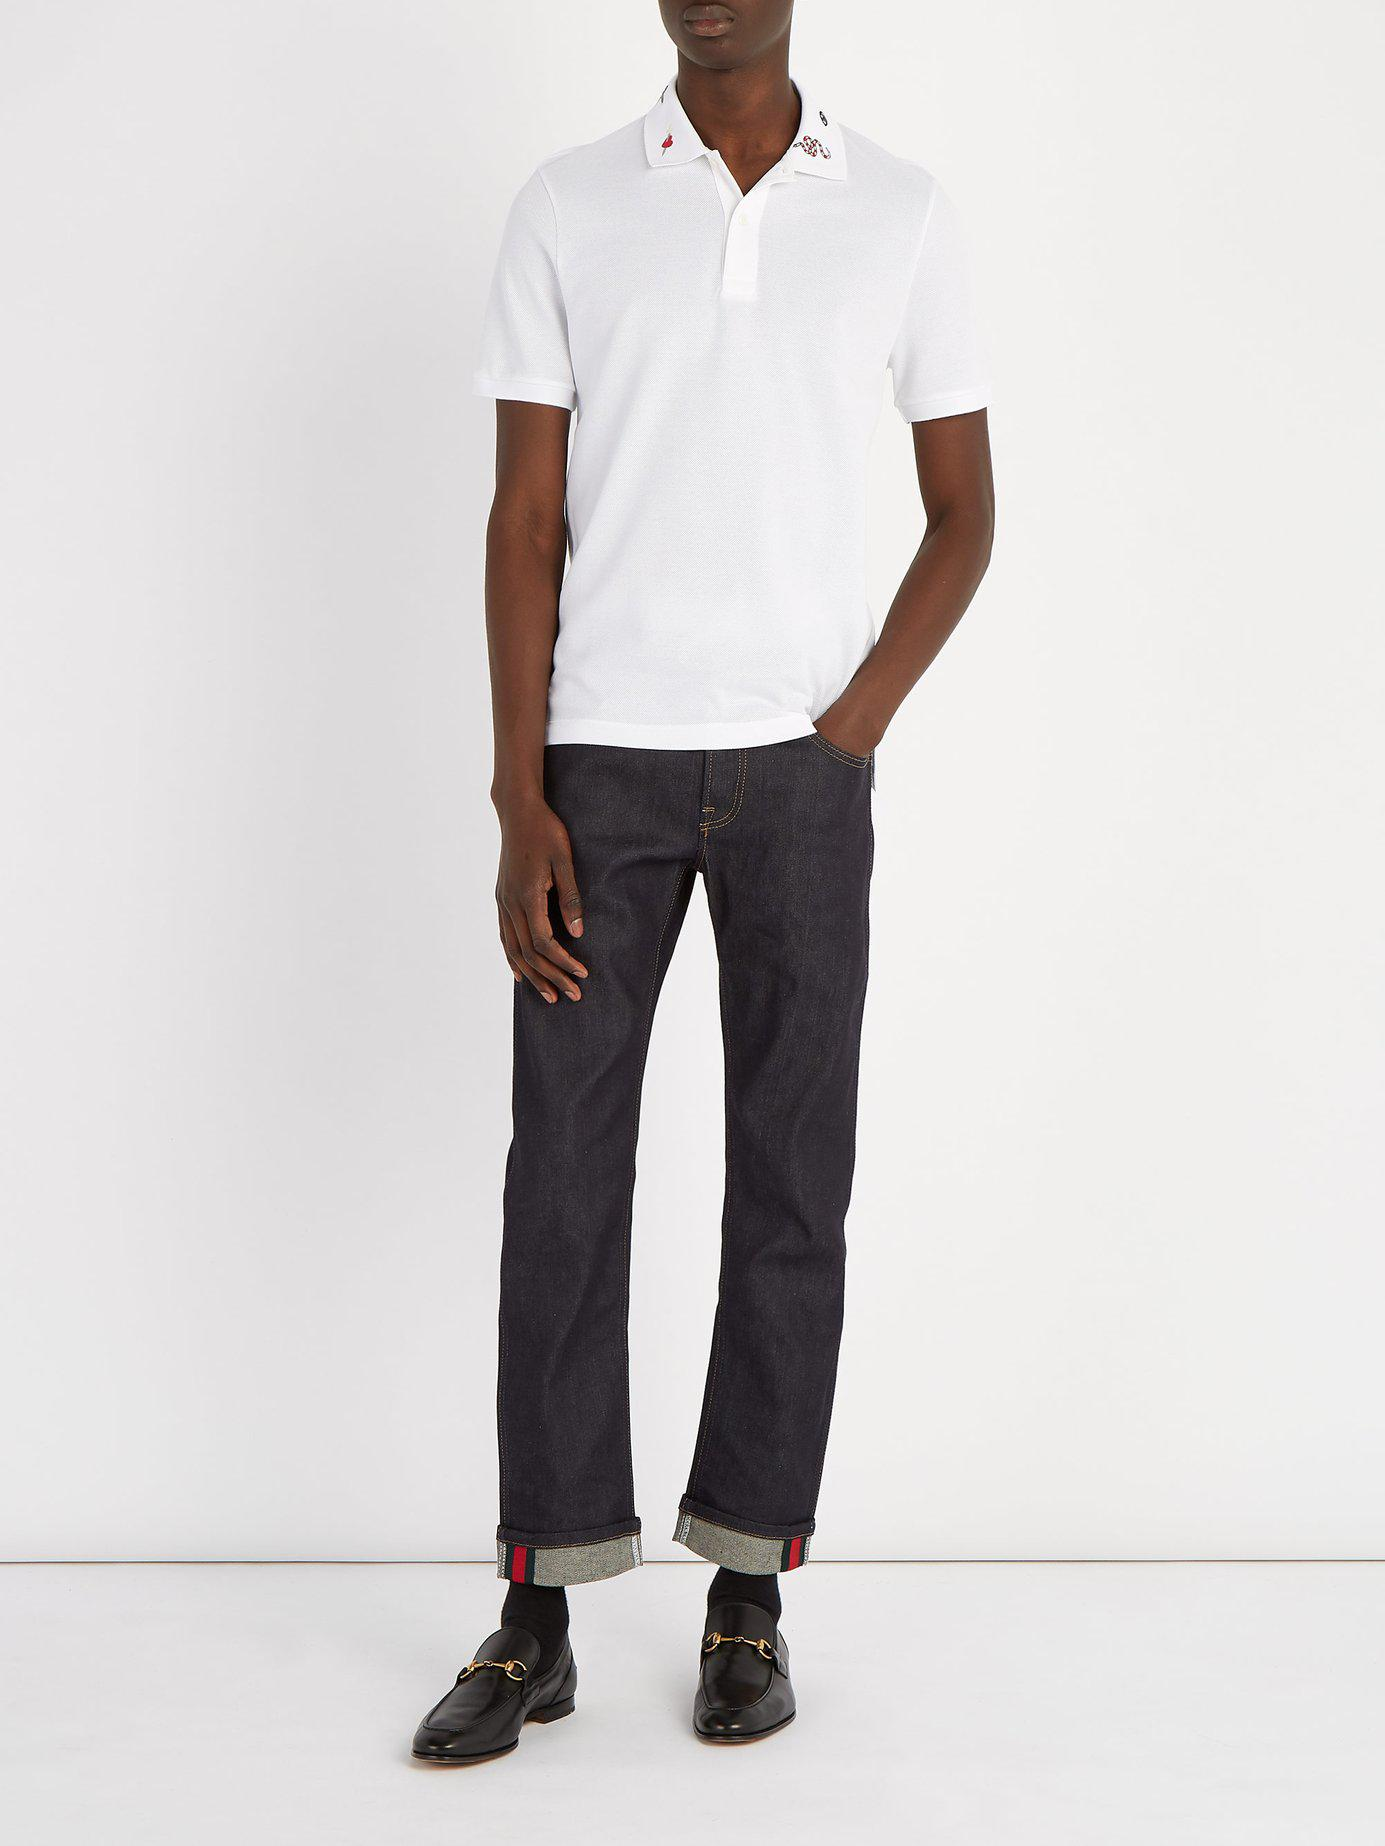 3f231047540 Gucci Embroidered Collar Cotton Blend Piqué Polo Shirt in White for Men -  Lyst